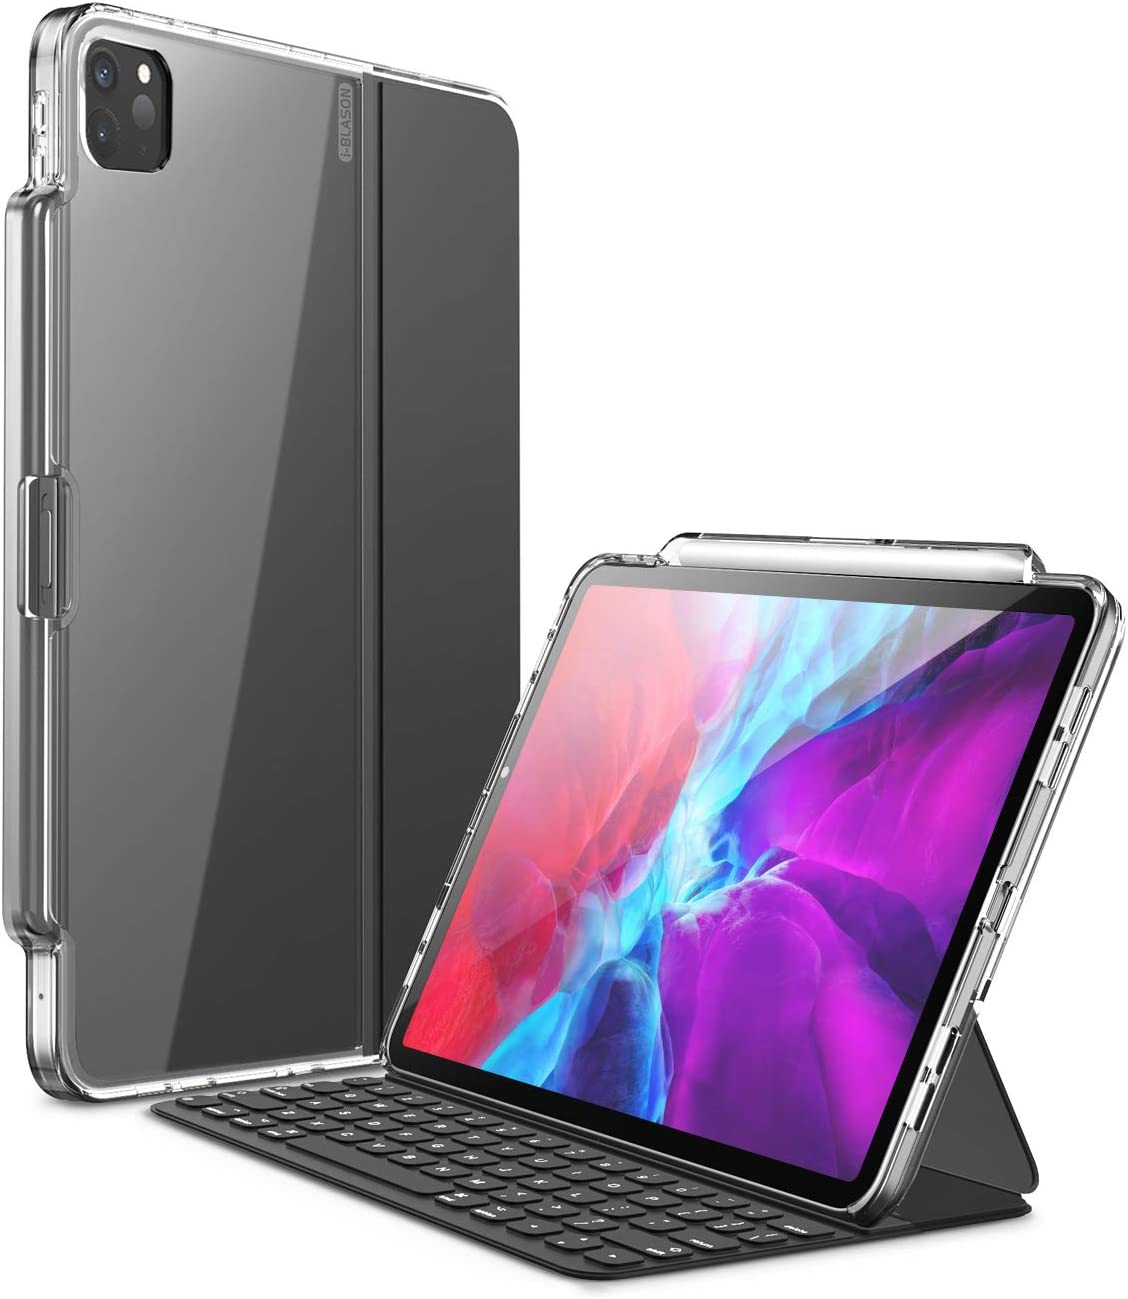 i-Blason Halo Series Case for New iPad Pro 11 Inch (2020/2018 Release), [ONLY for use with Smart Keyboard Folio; Compatible with Official Smart Folio] Clear Protective Case with Pencil Holder, Clear